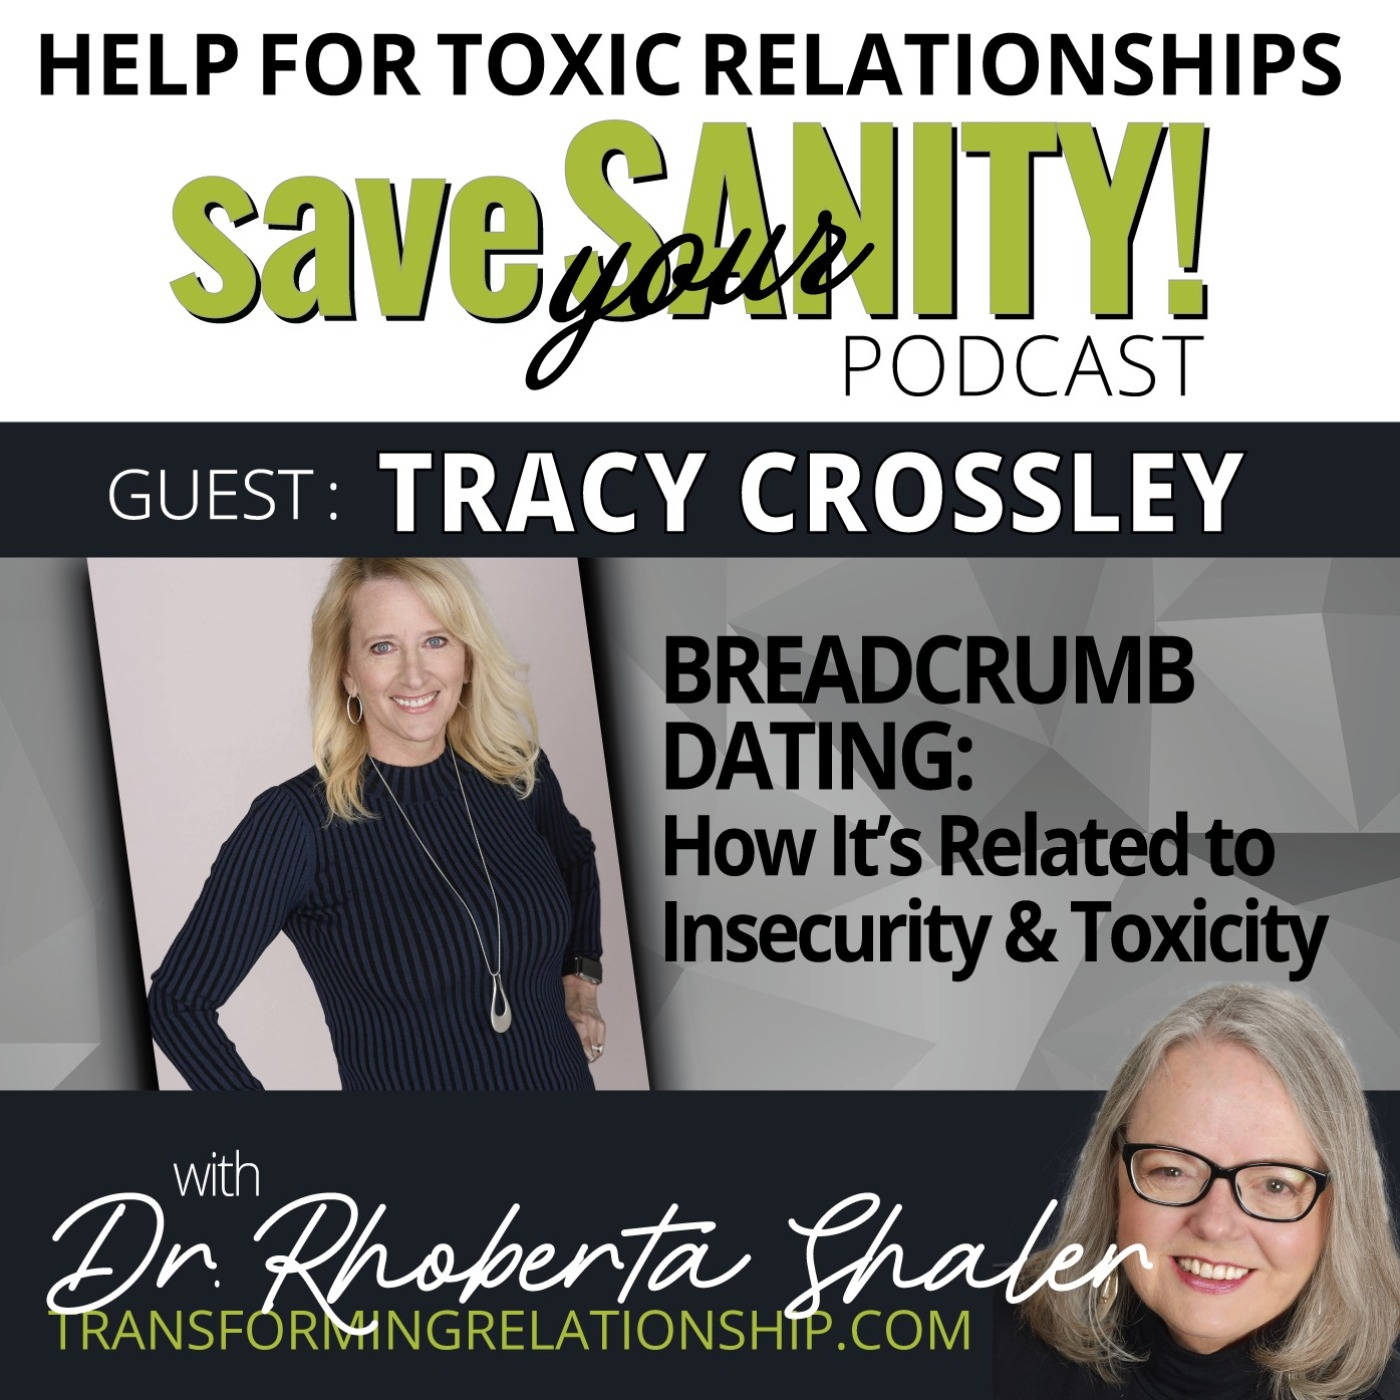 Breadcrumb Dating: How It's Related to Insecurity & Toxicity  GUEST: Tracy Crossley